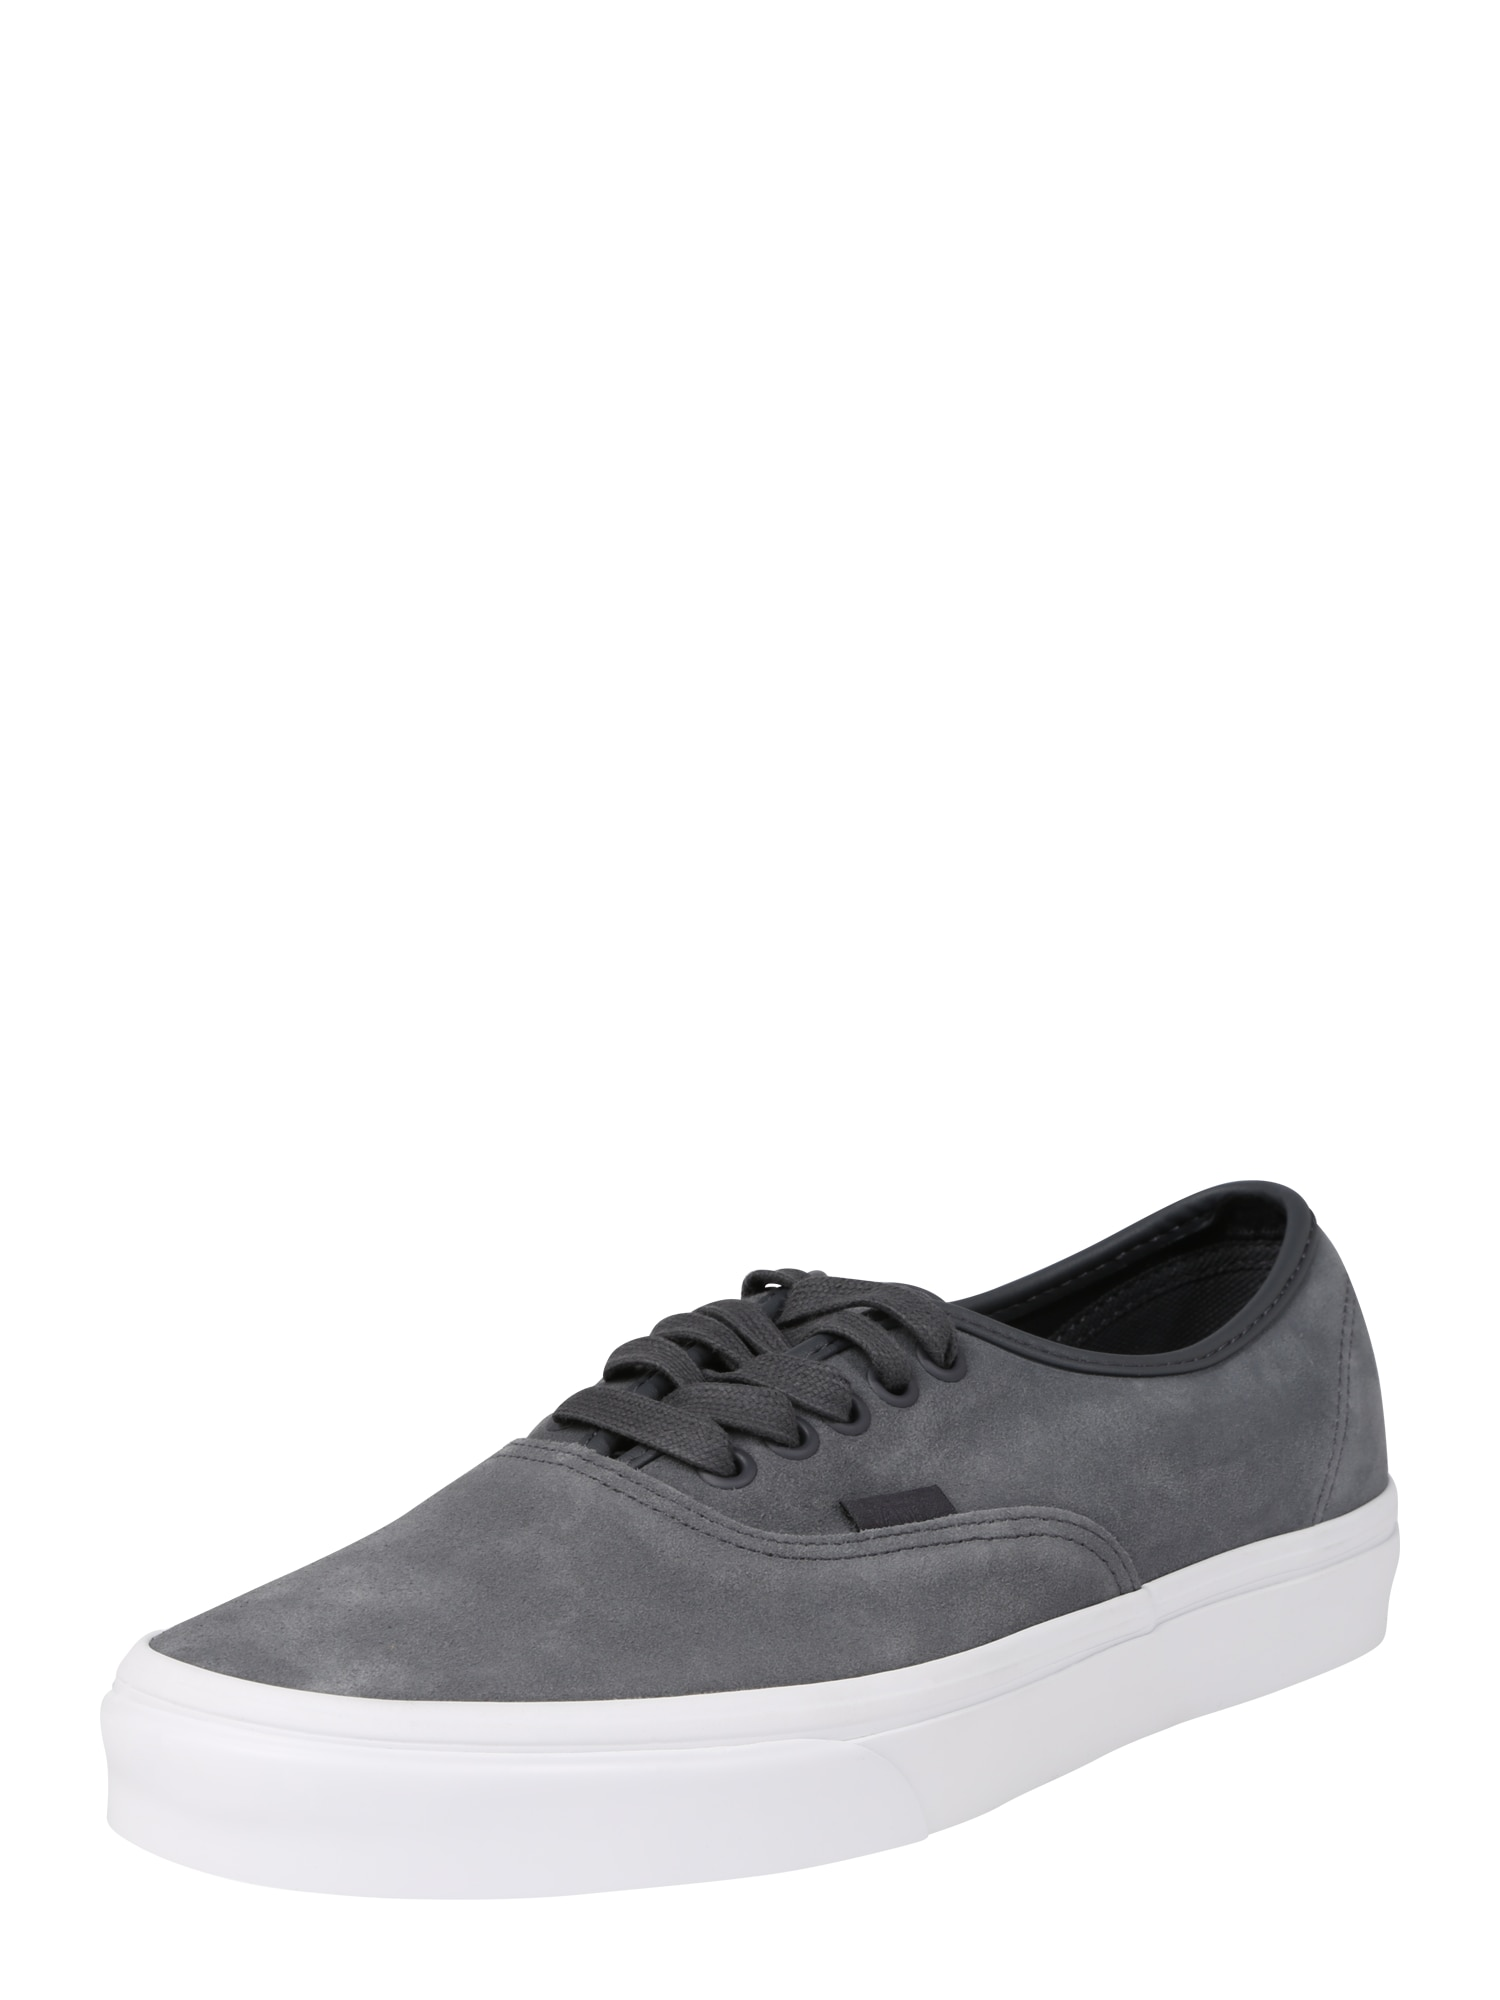 VANS, Heren Sneakers laag 'Authentic', antraciet / wit